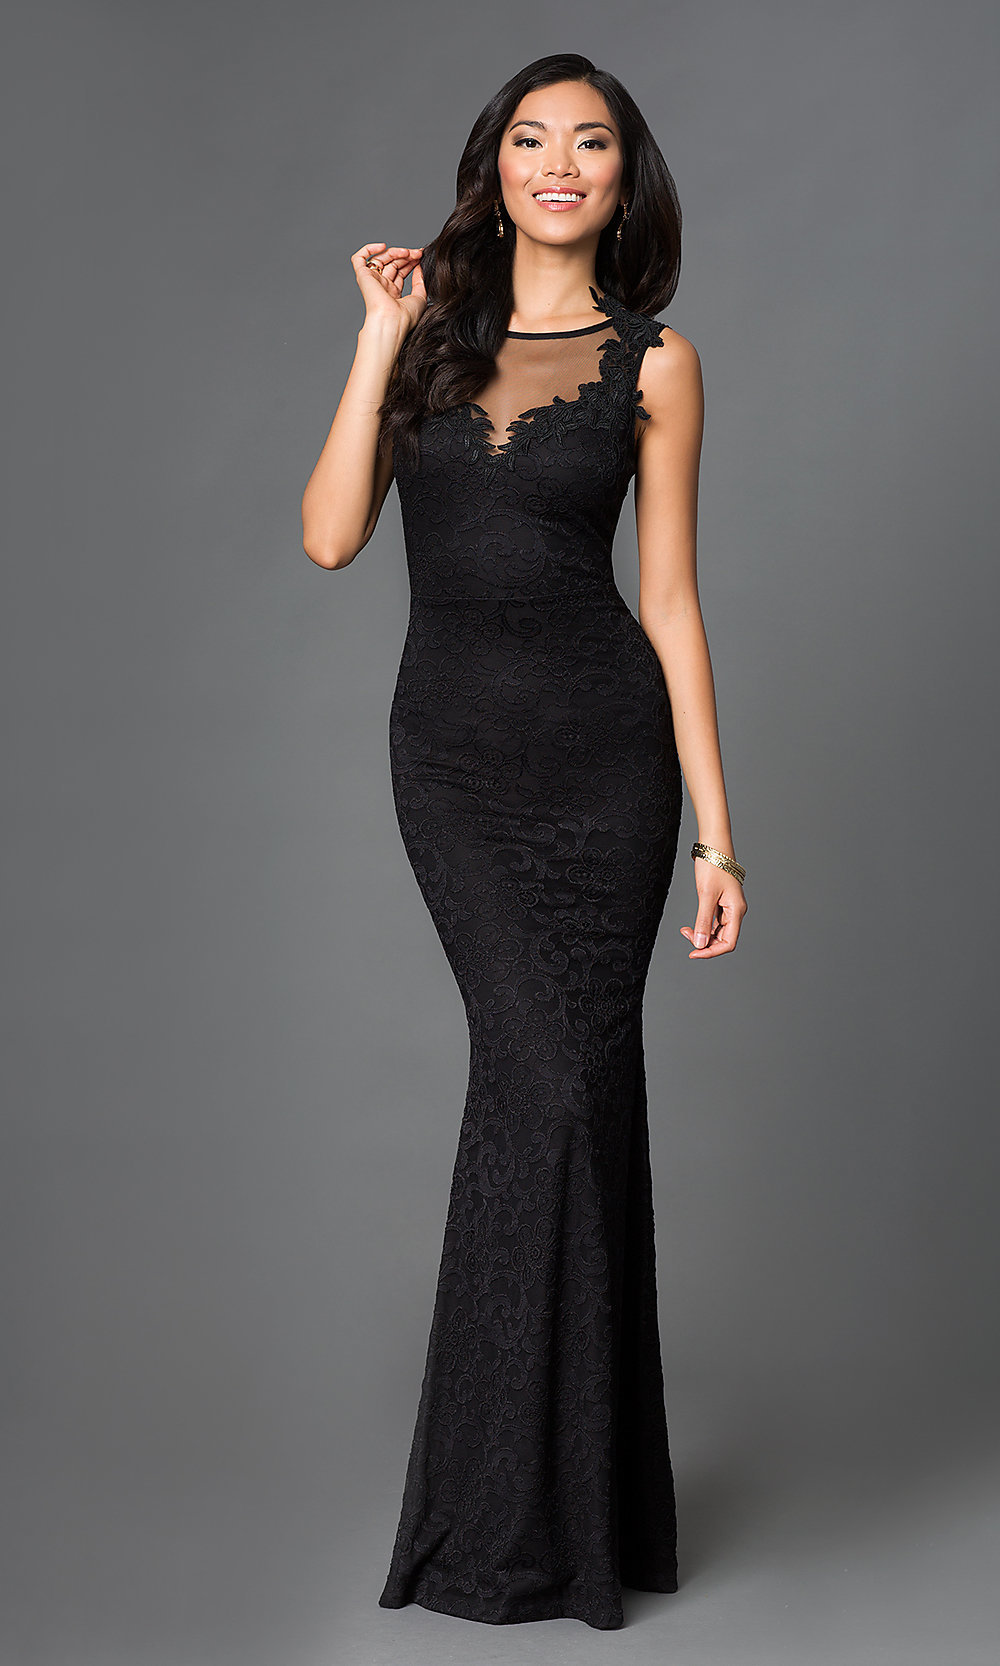 Black Sleeveless Long Prom Dress Promgirl